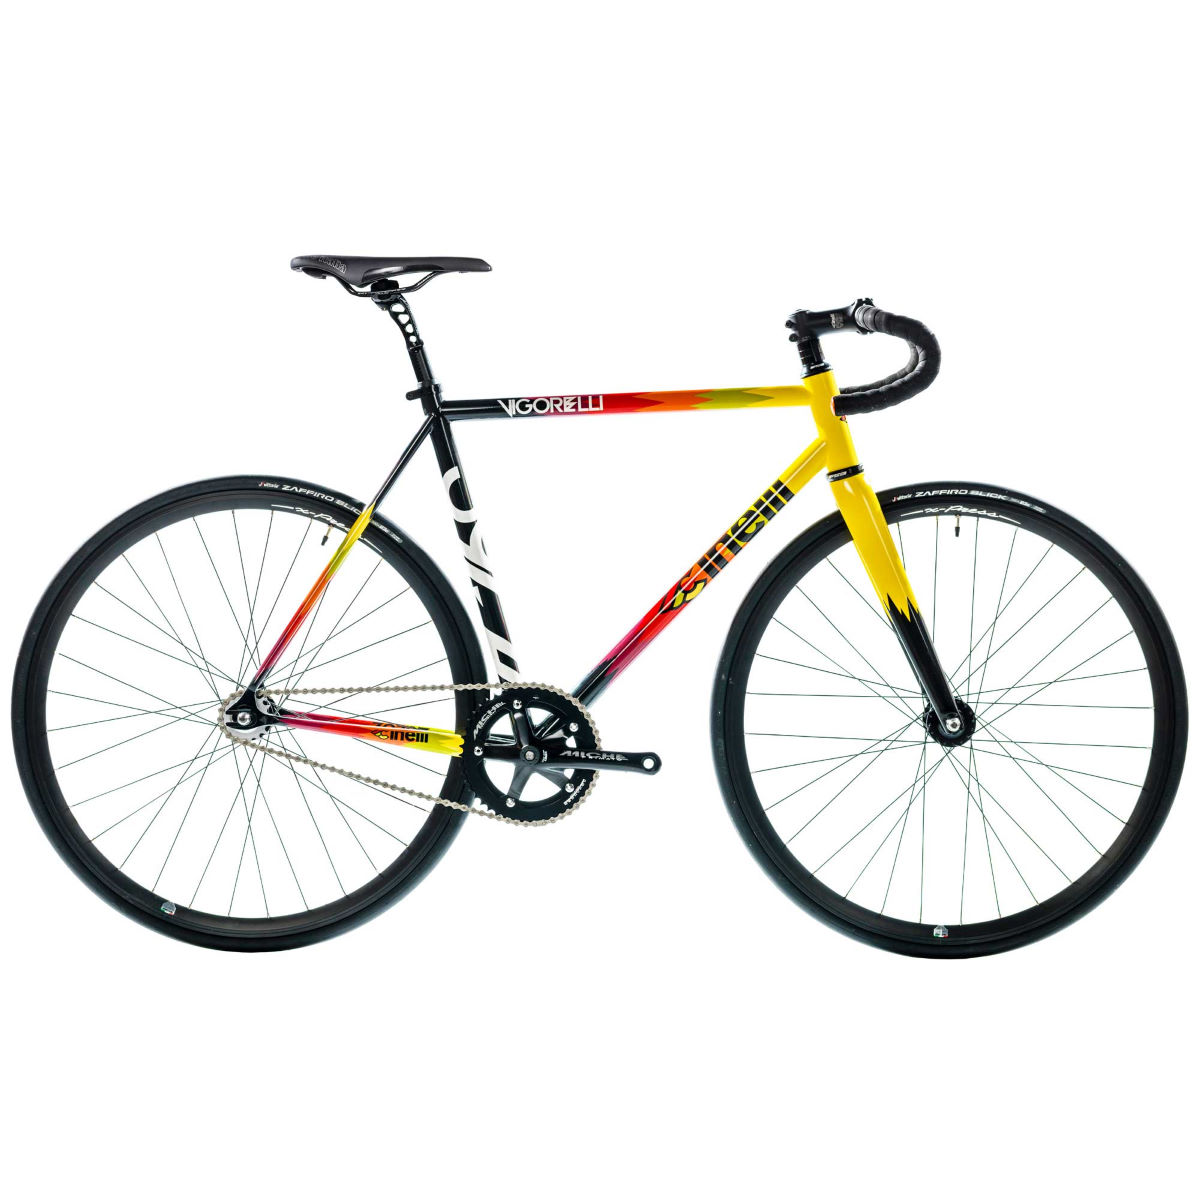 Vélo Cinelli Vigorelli (acier, single speed, 2017) - L Stock Bike White/Yellow Single speed